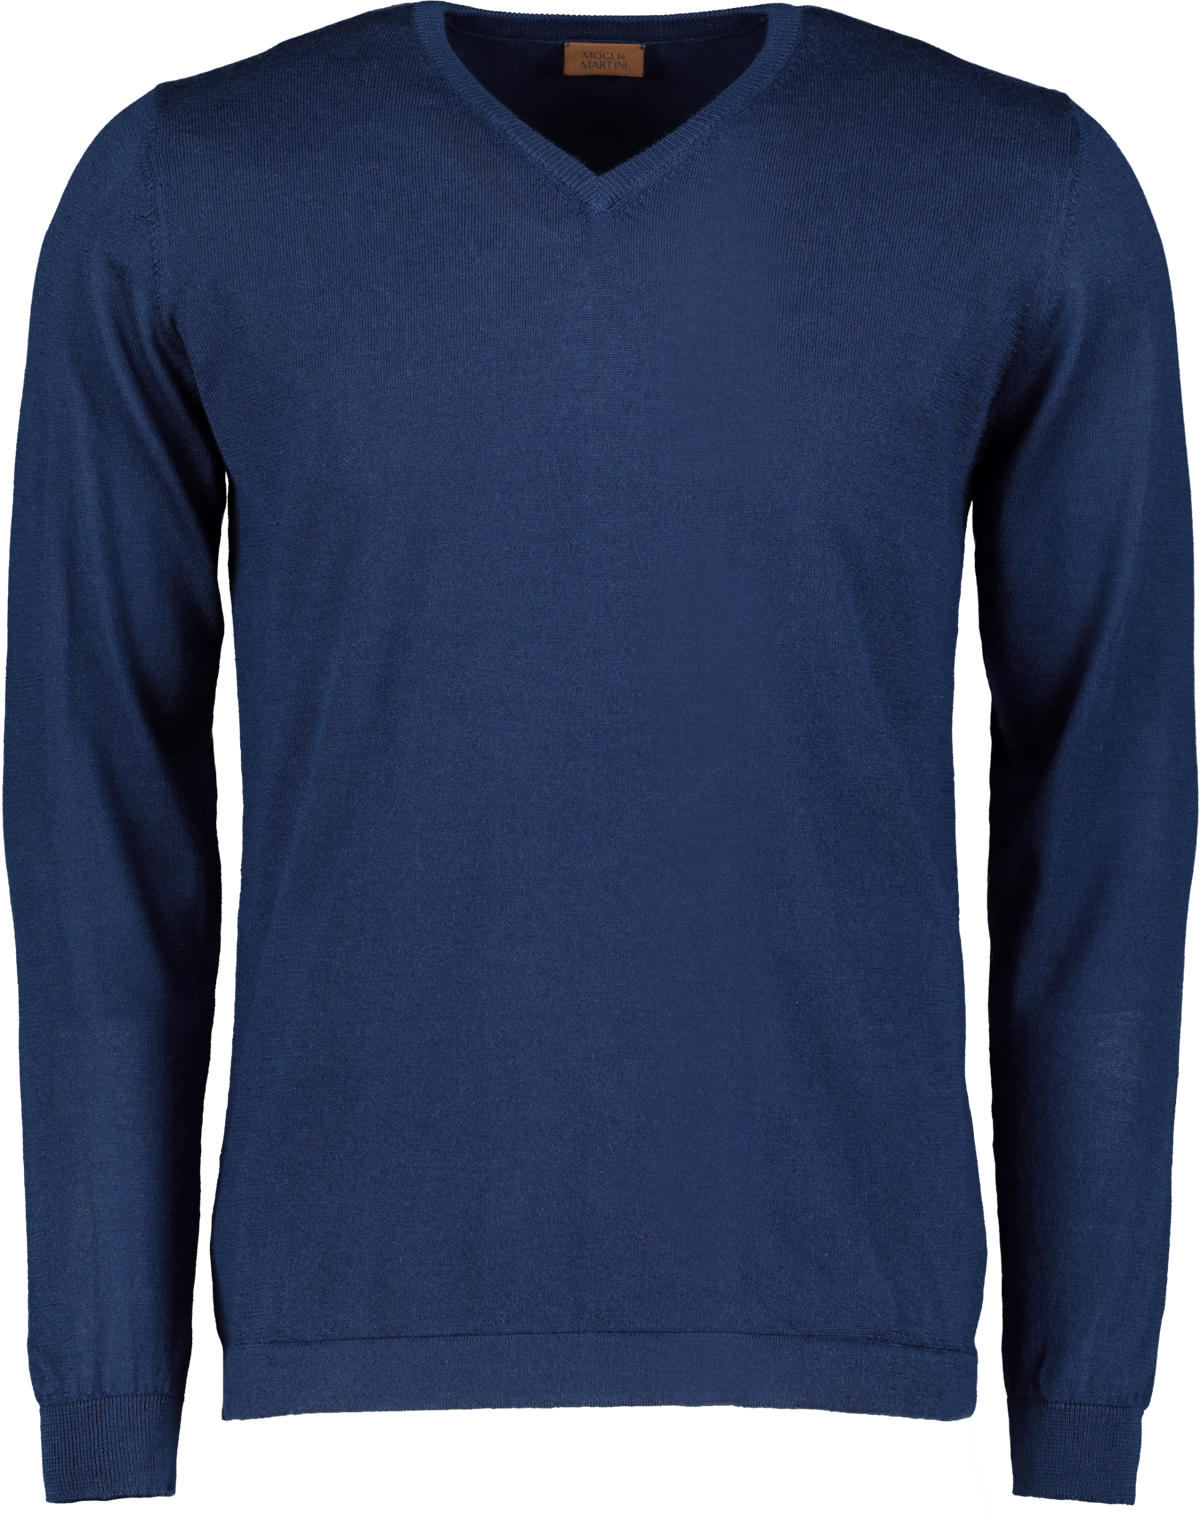 MOGLI & MARTINI - Kaschmir & Seide Sweater - royal blau - EUR 149